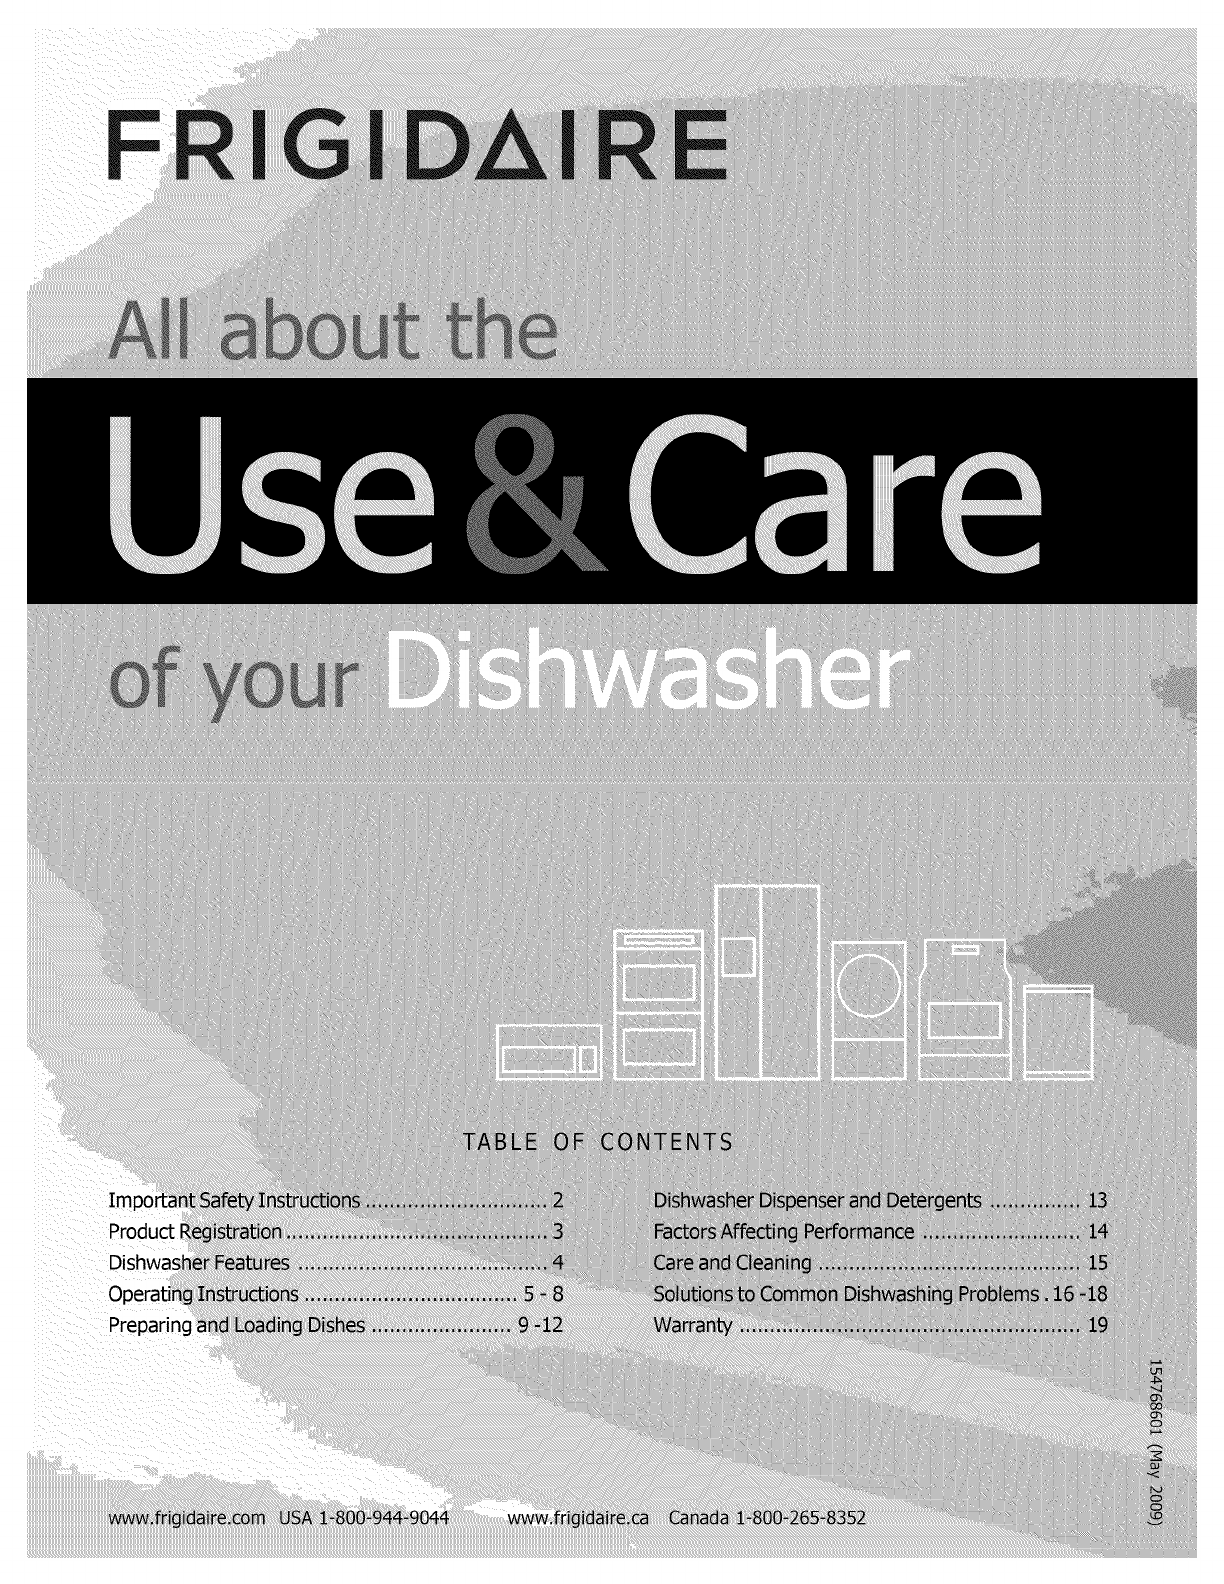 Frigidaire Dgbd2432kb1 User Manual Dishwasher Manuals And Guides